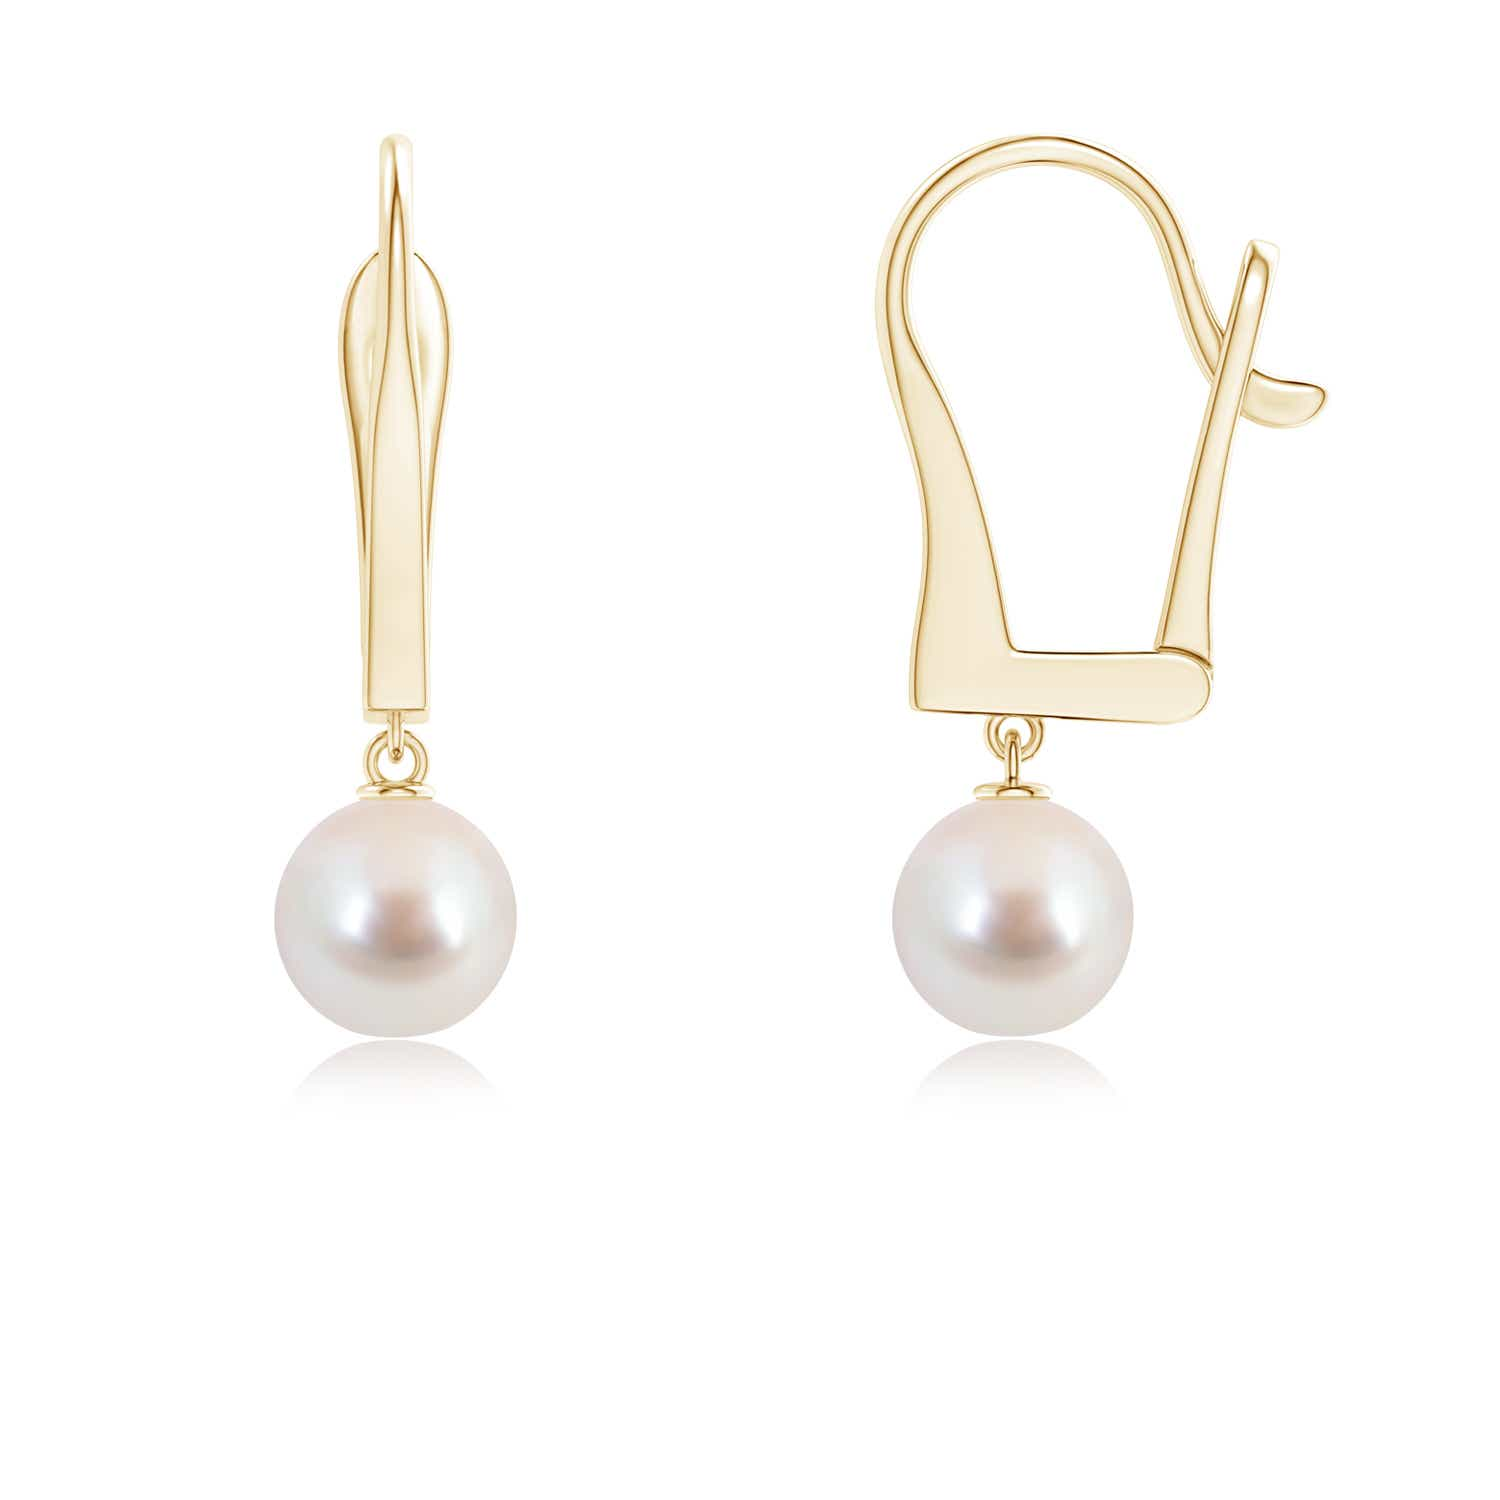 Angara Solitaire South Sea Cultured Pearl Leverback Dangle Earrings mY0iJZcW